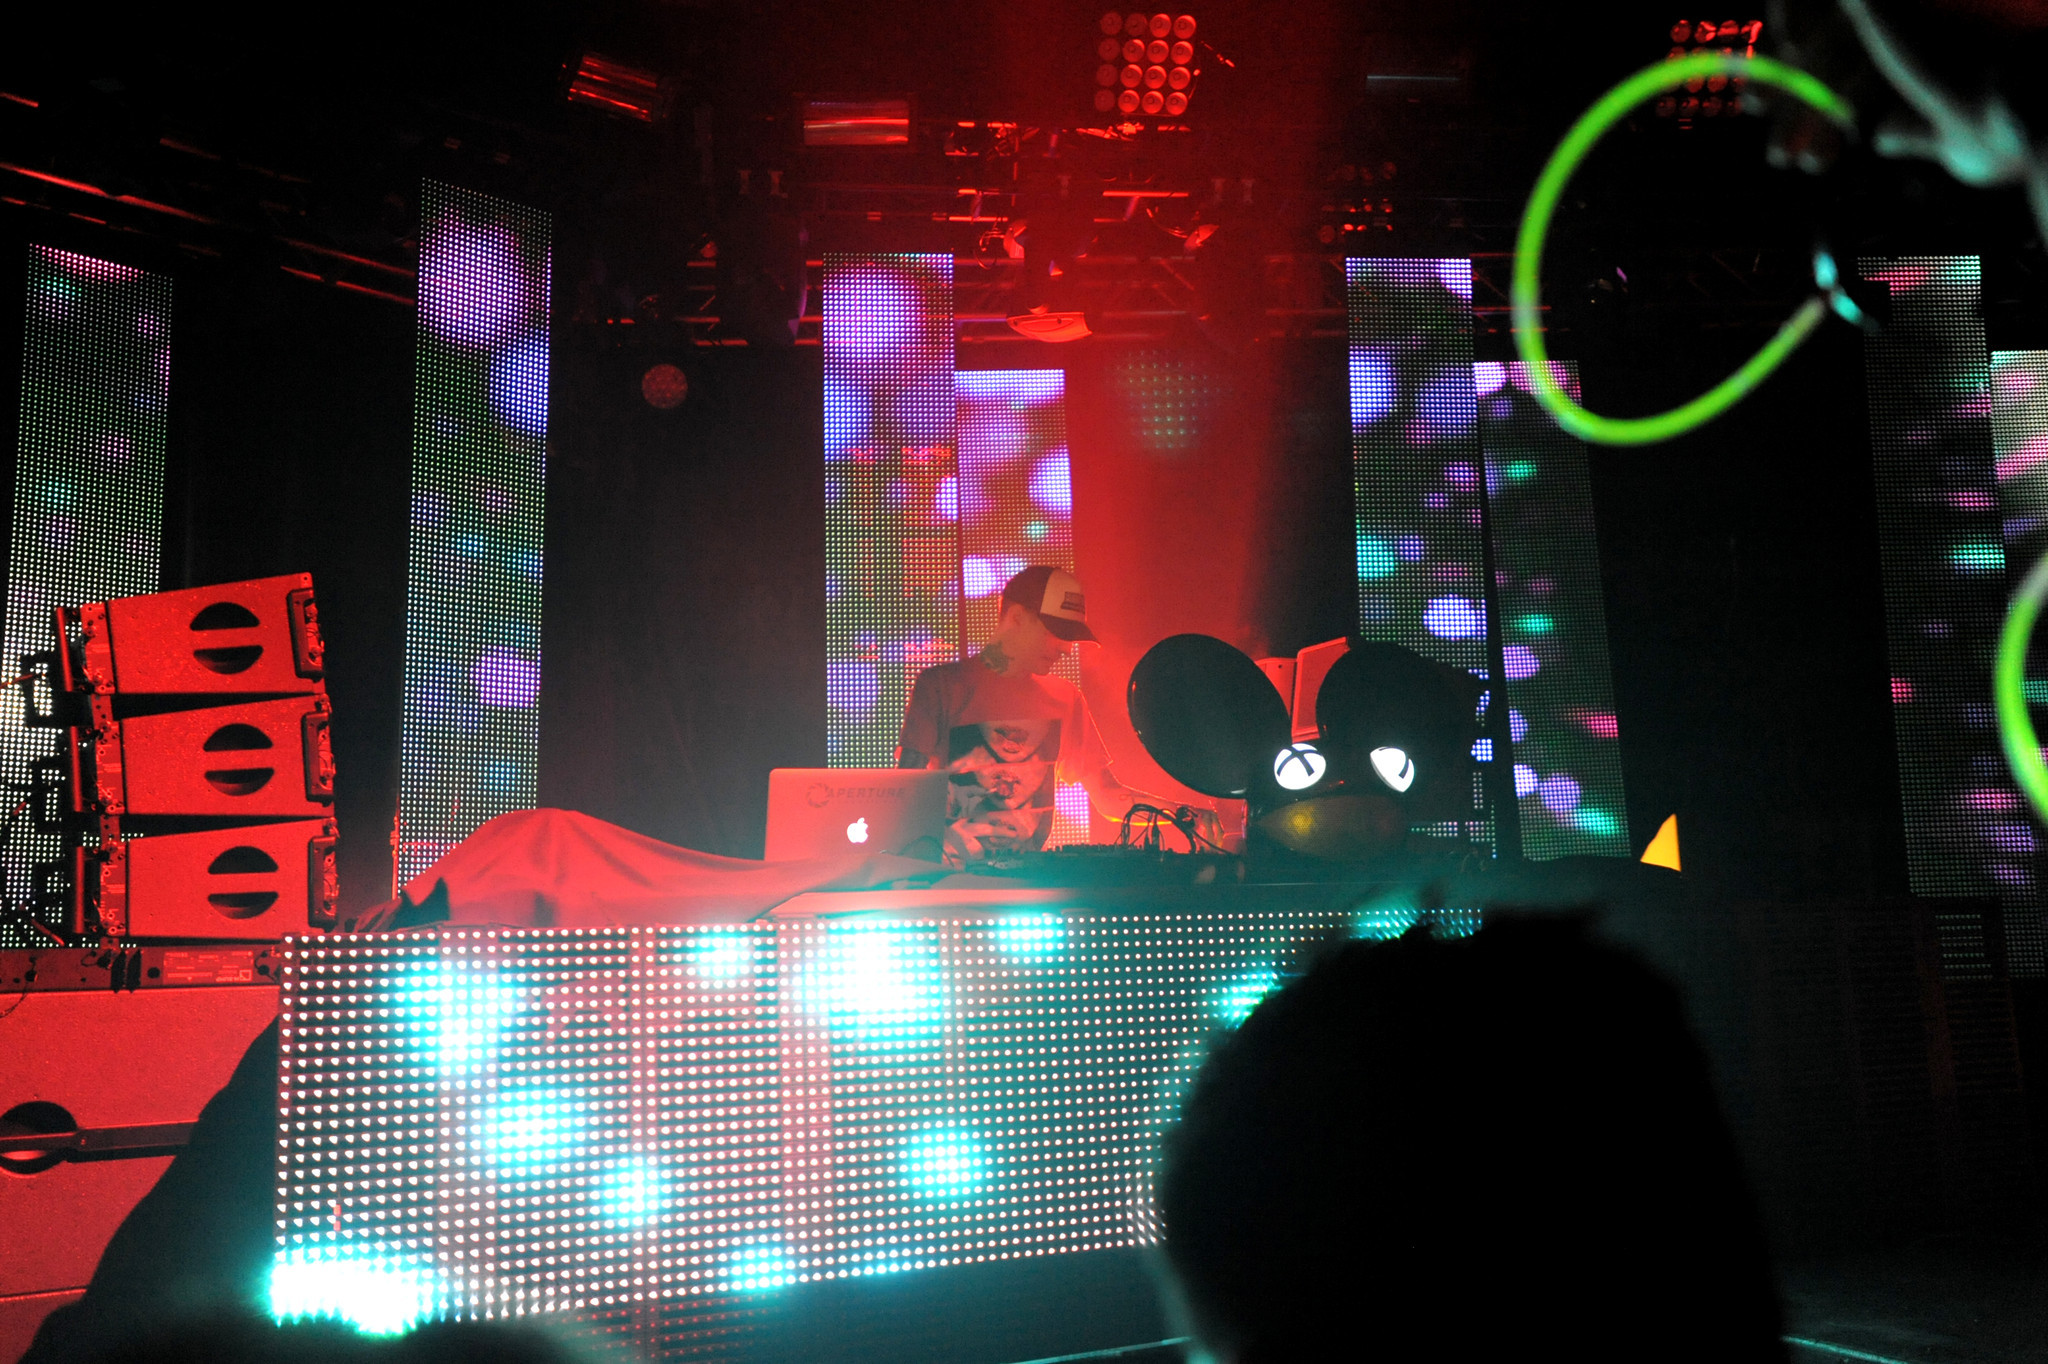 Free deadmau5 show in Miami - deadmau5 at Ice Palace